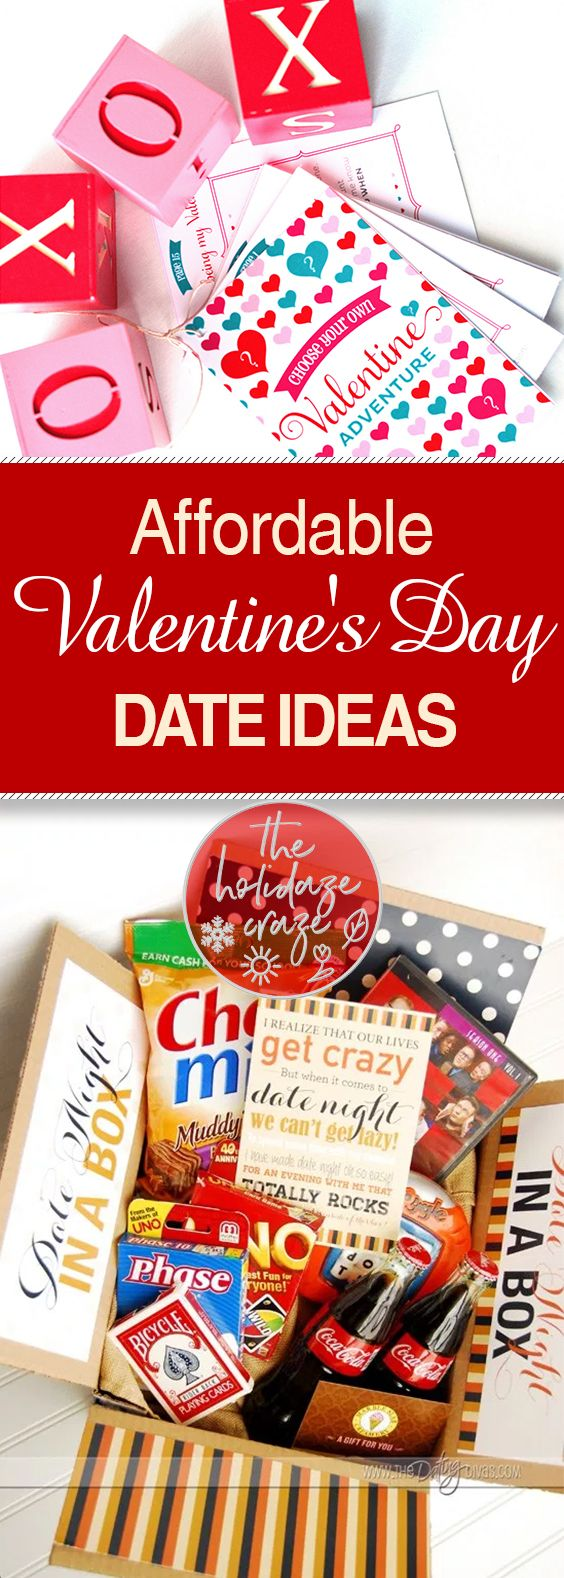 affordable valentines day date ideas valentines day dates valentines day date ideas diy